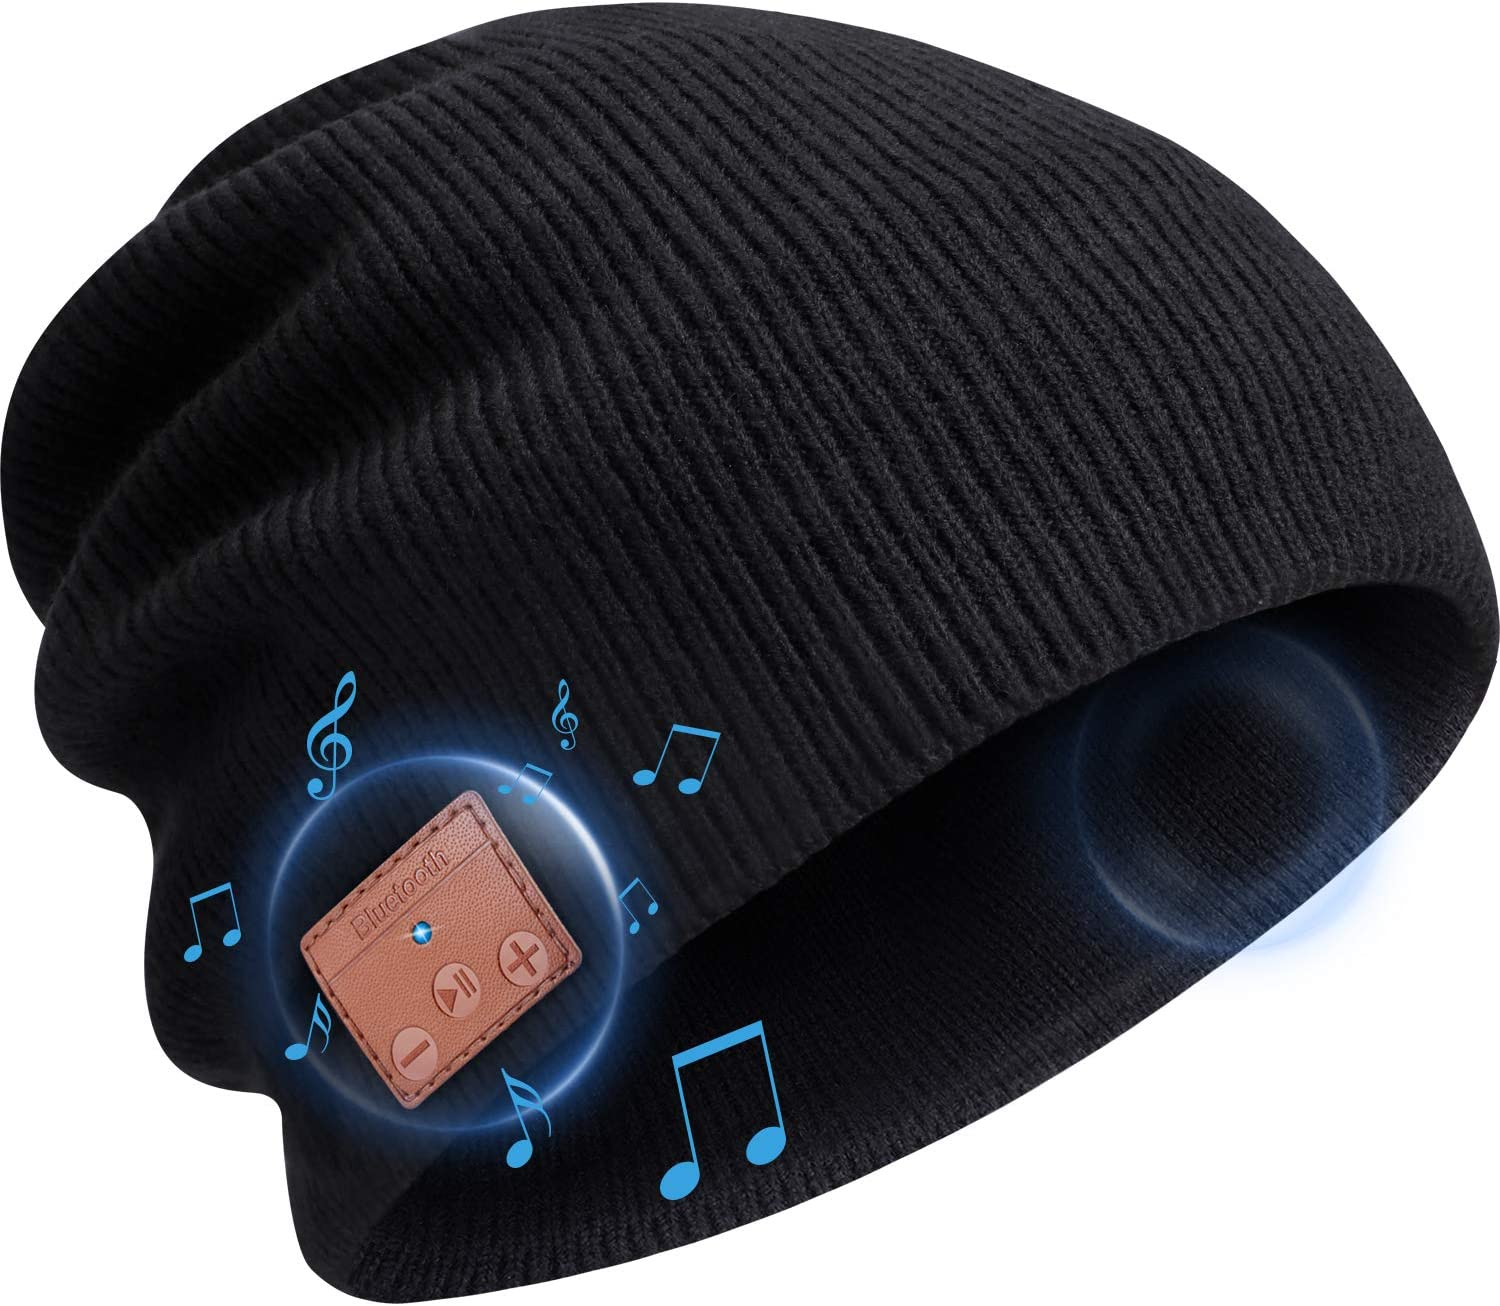 Warm Winter Knitted Music Beanie Hat w//Built-in Headphone /& Mic for Fitness Exercise Running Walking Dog Winter Sports CestMall Unisex Bluetooth Hat Headset Cap with Touchscreen Gloves Set